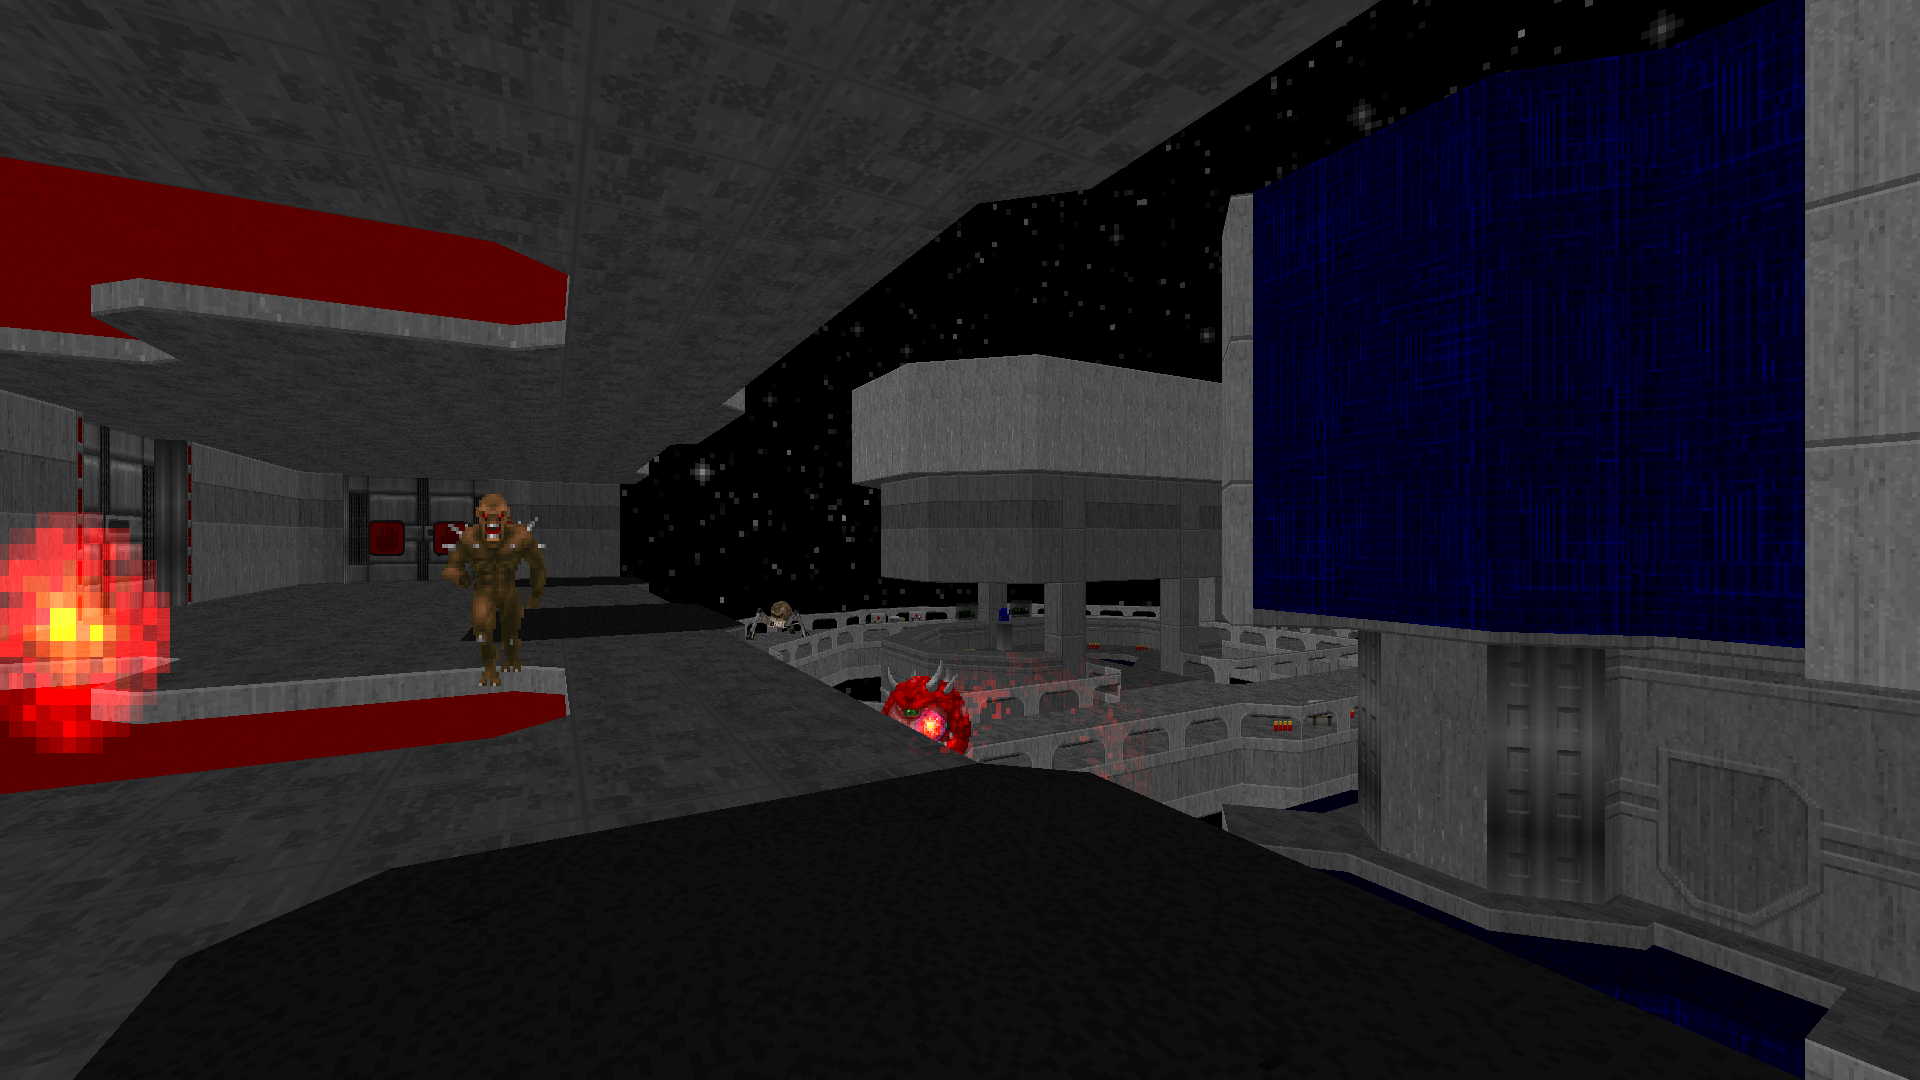 Screenshot_Doom_20200516_182101.png.3fb0e9520b323deb9d90fbe8534f8f87.png